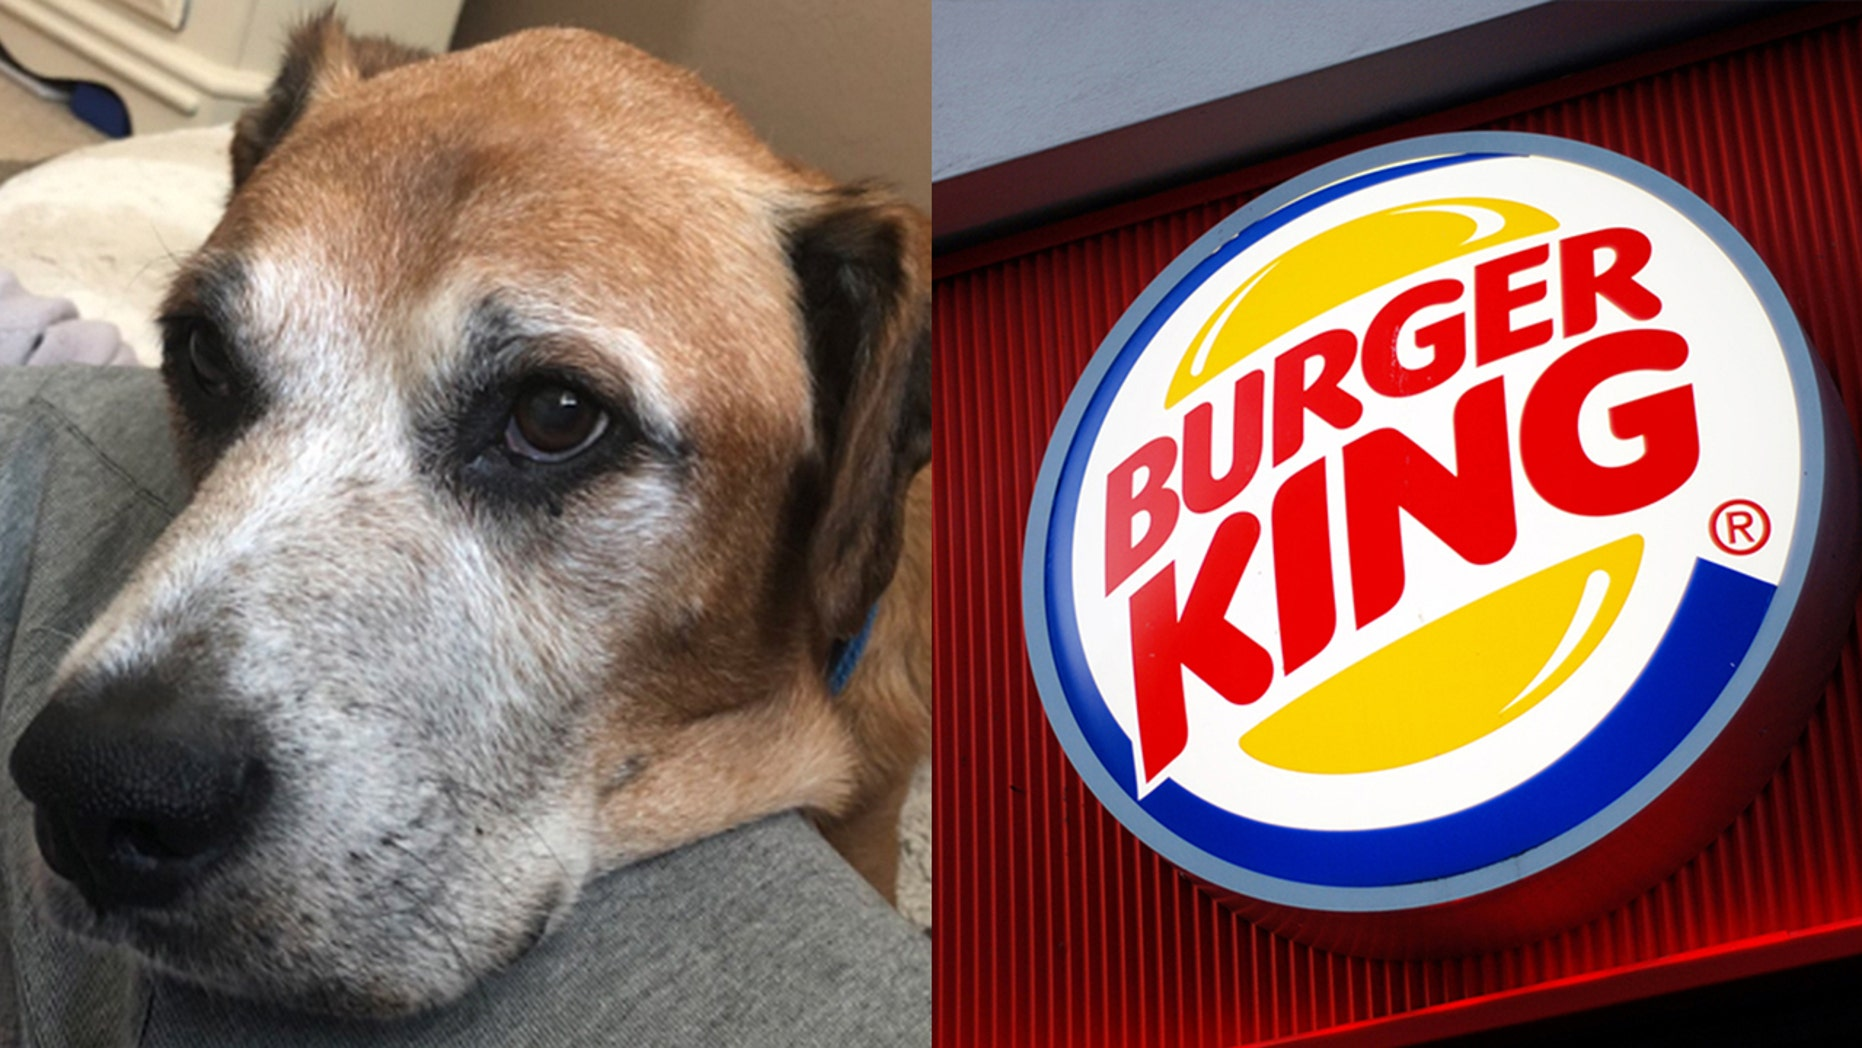 A Burger King in Toledo, Ohio is giving terminally ill Cody free cheeseburgers to help keep him happy in his final days.